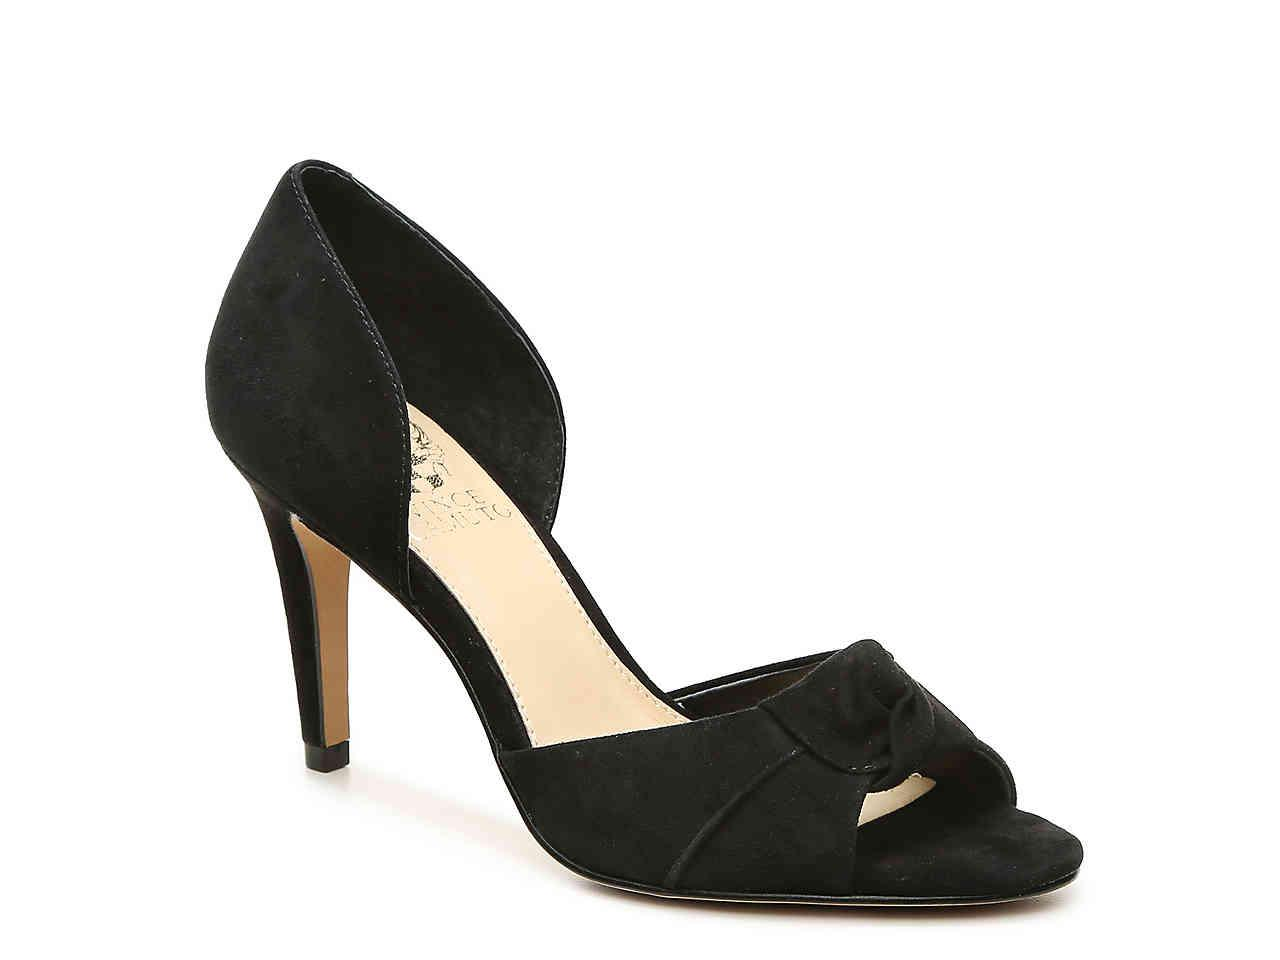 1a2306a6ce8d Lyst - Vince Camuto Catielia Pump in Black